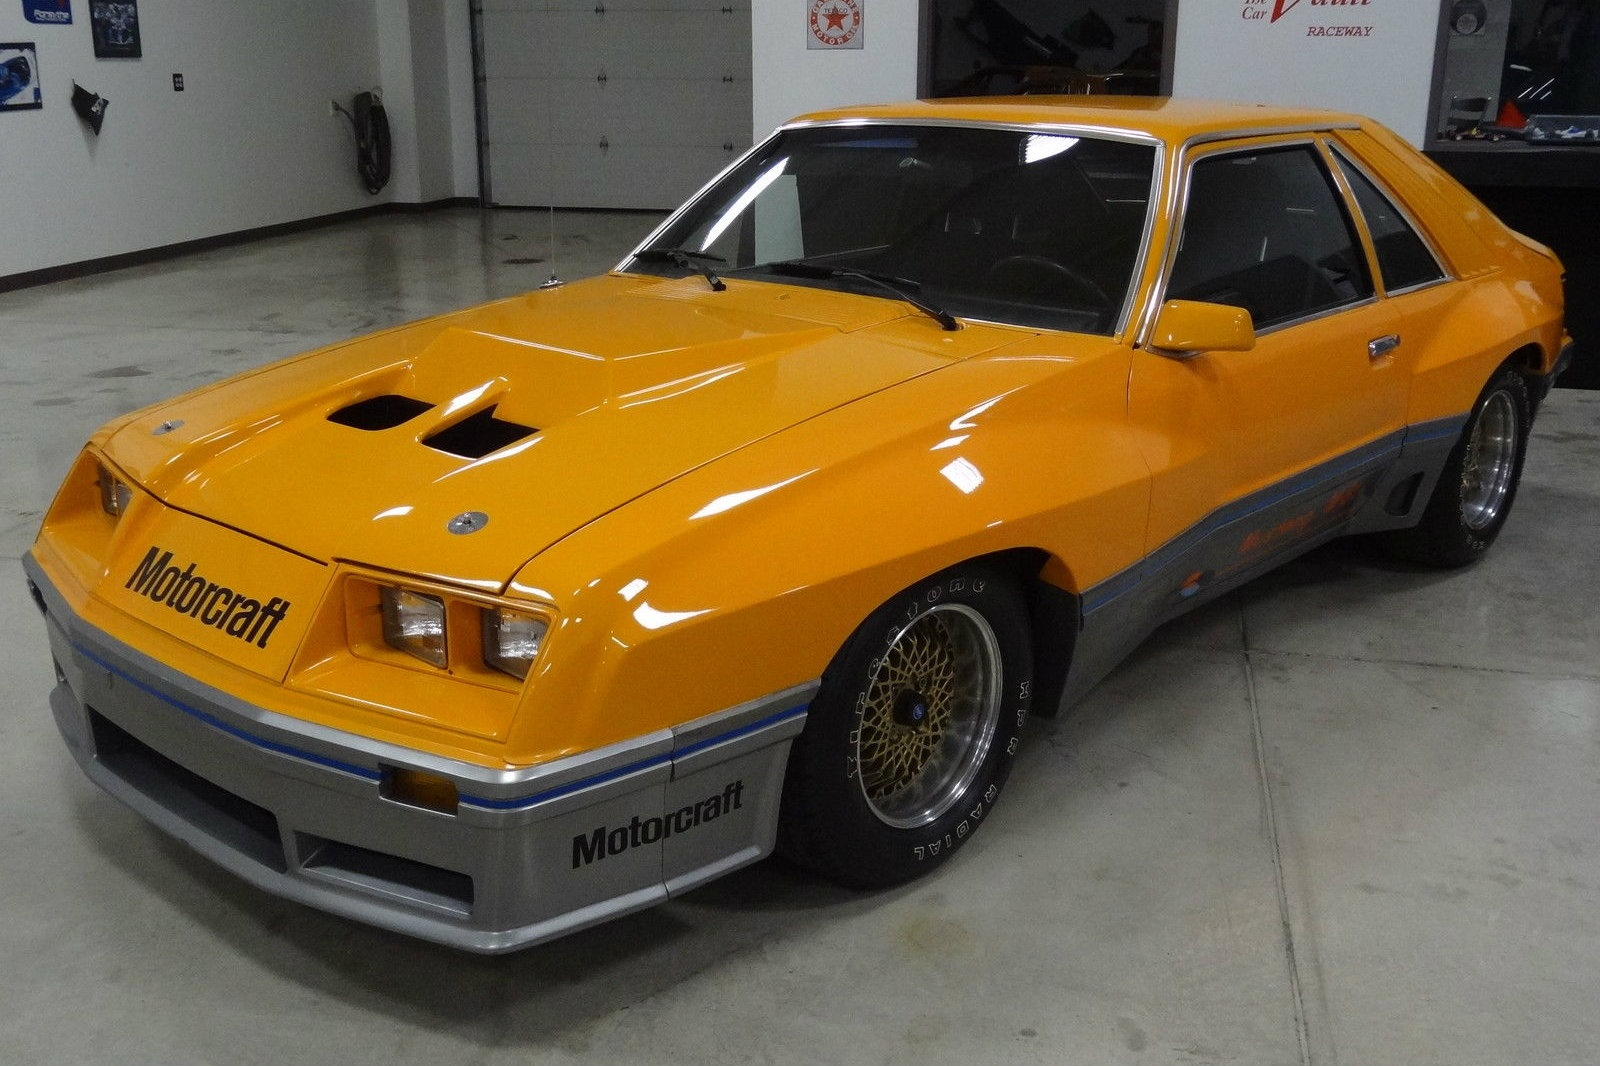 Ford Mustang Color >> 1980 M-81 McLaren Mustang Prototype With 74 Miles!